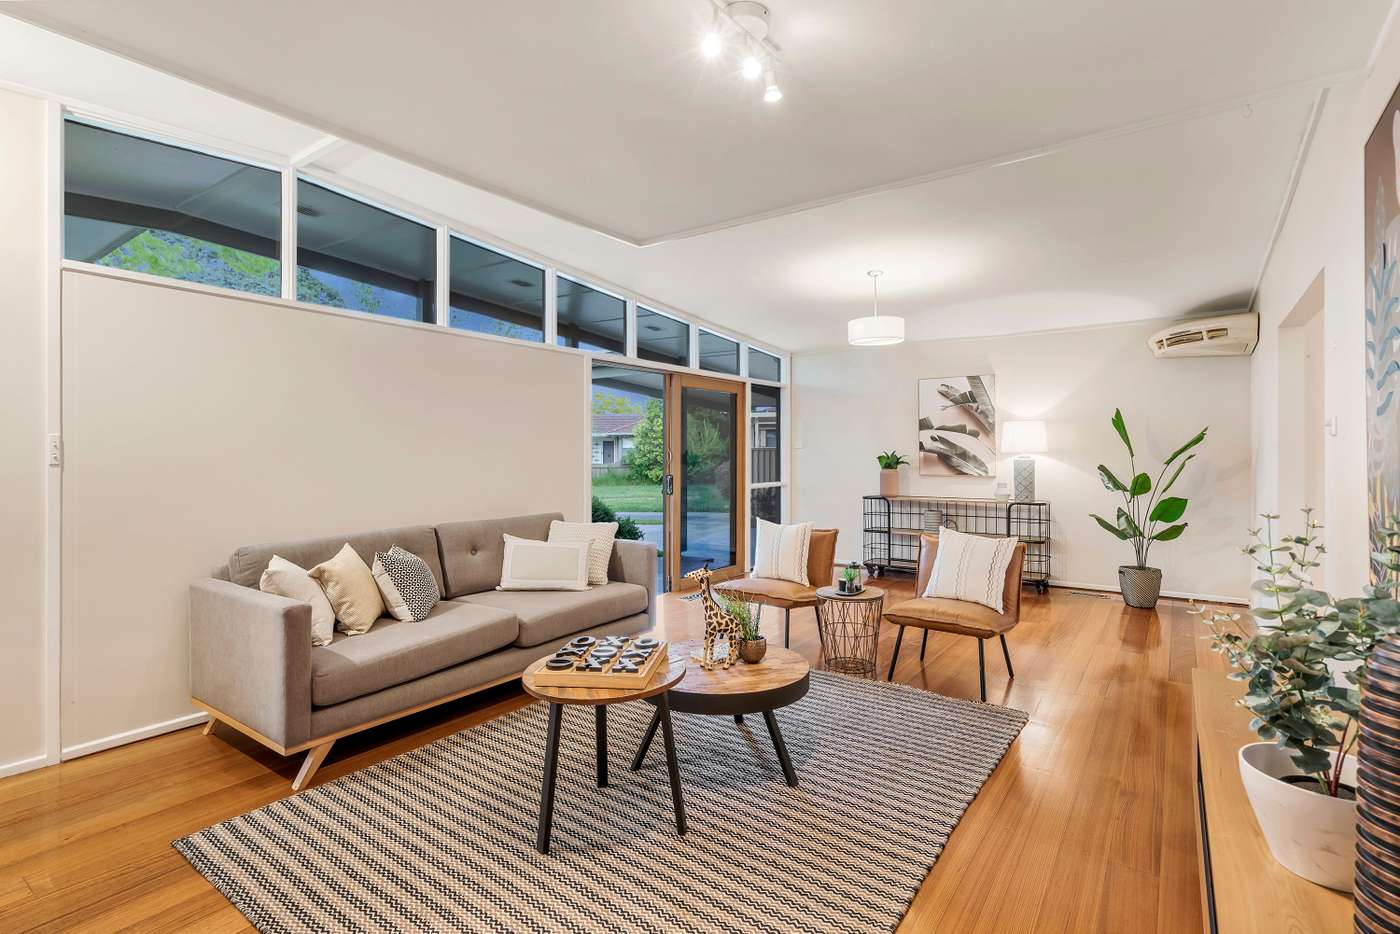 Fifth view of Homely house listing, 7 Stratford Court, Mulgrave VIC 3170